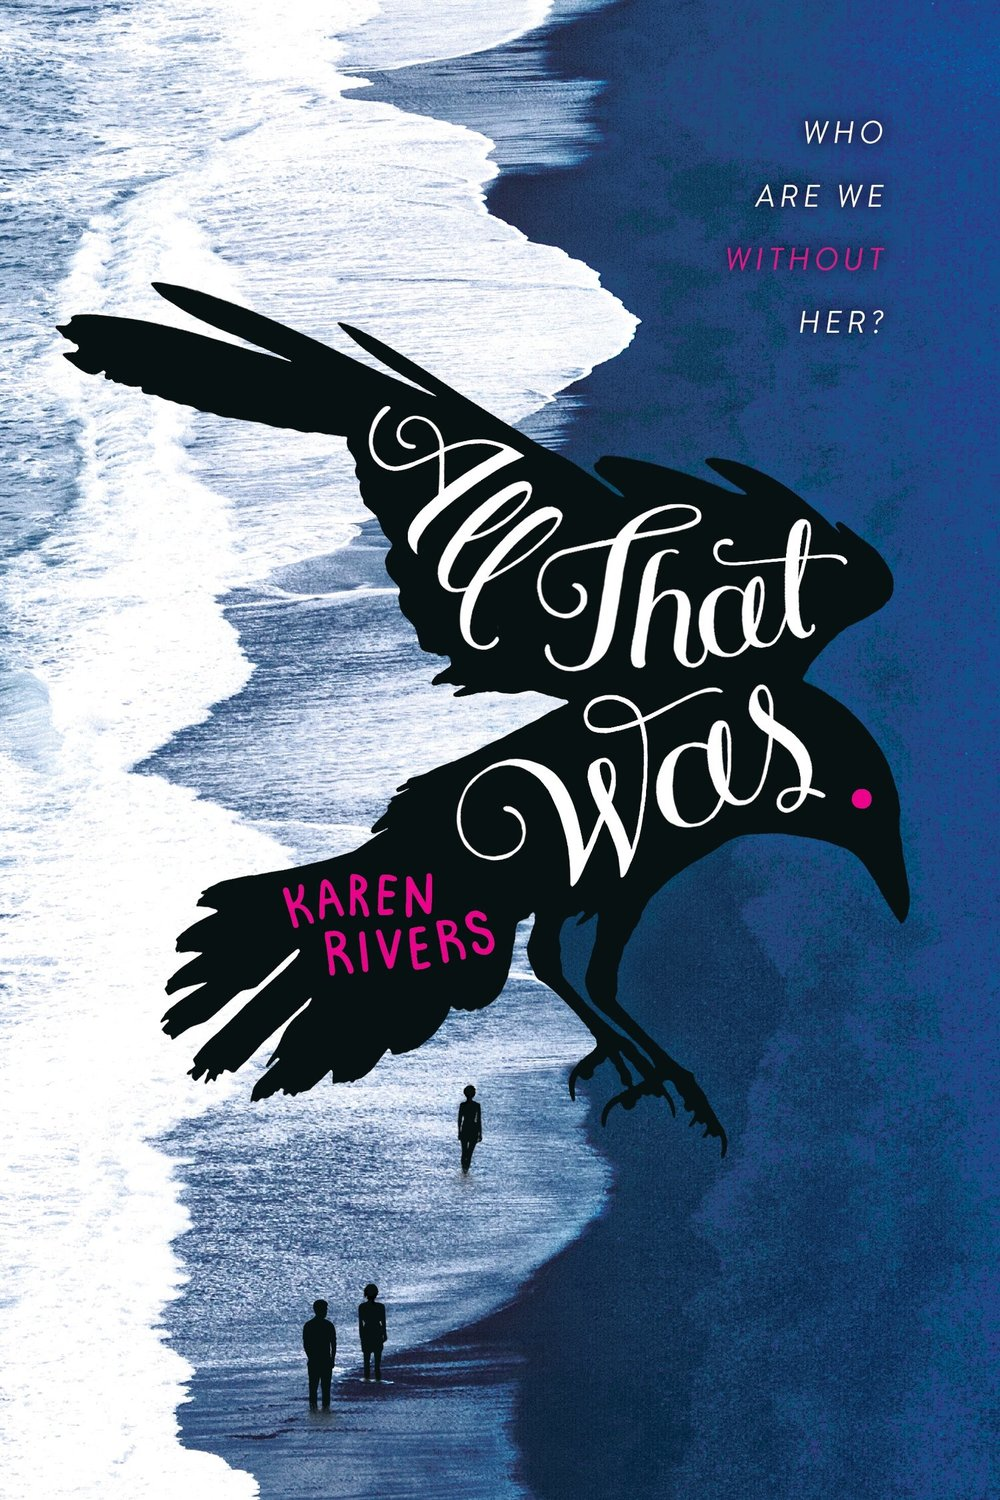 All That Was, Karen Rivers For Farrar, Straus and Giroux BYR. Lettering by Aimee Fleck.